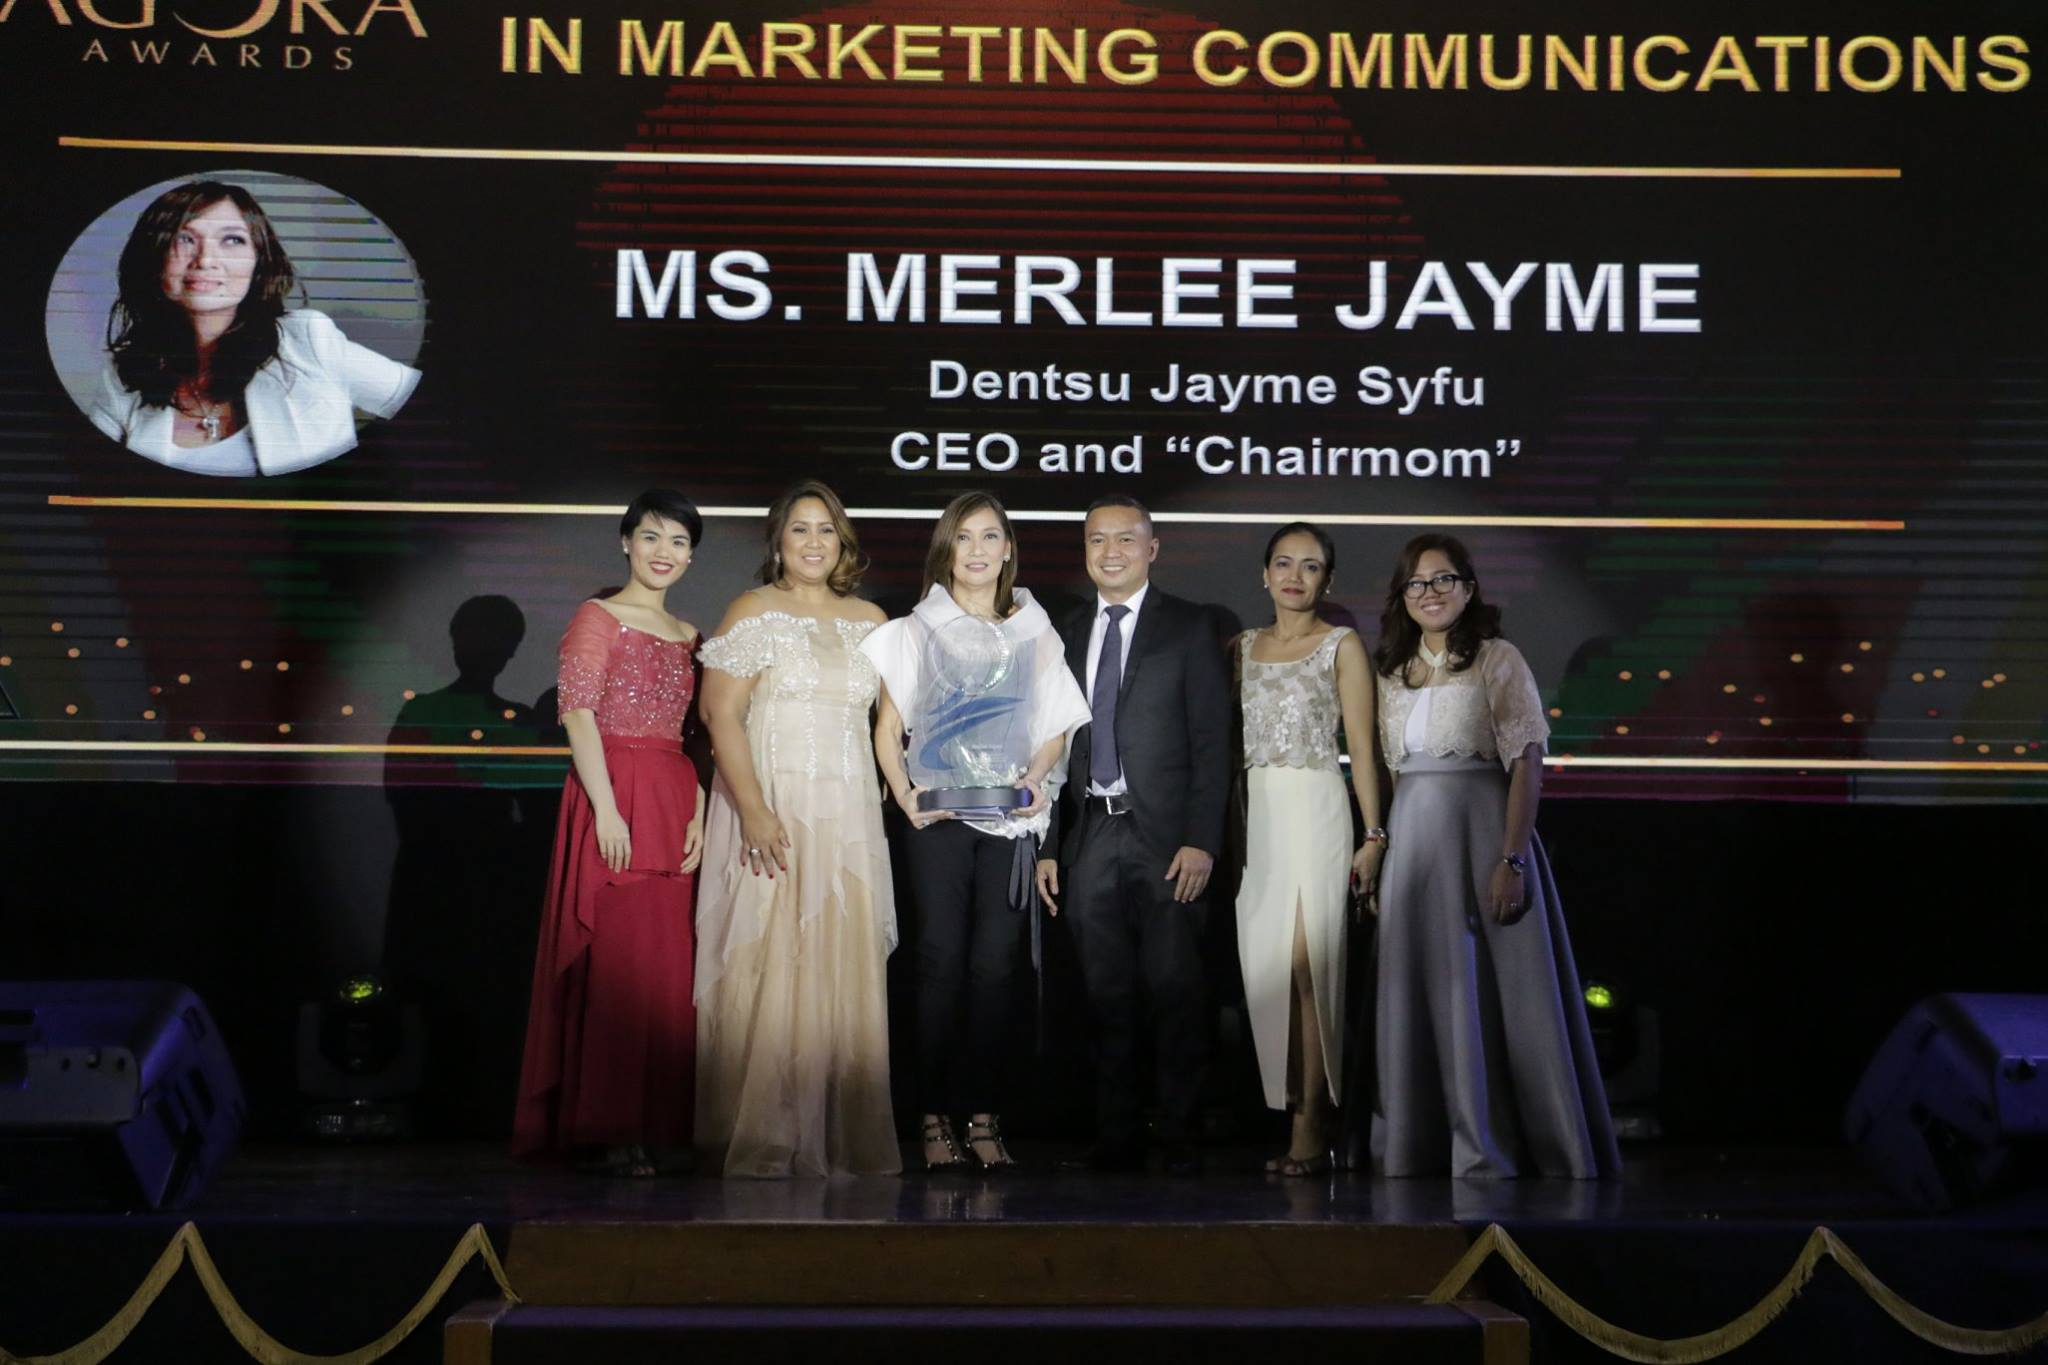 Outstanding Achievement in Marketing Communications Winner, Ms. Merlee Jayme, CEO and Chairmom of Dentsu Jayme Syfu